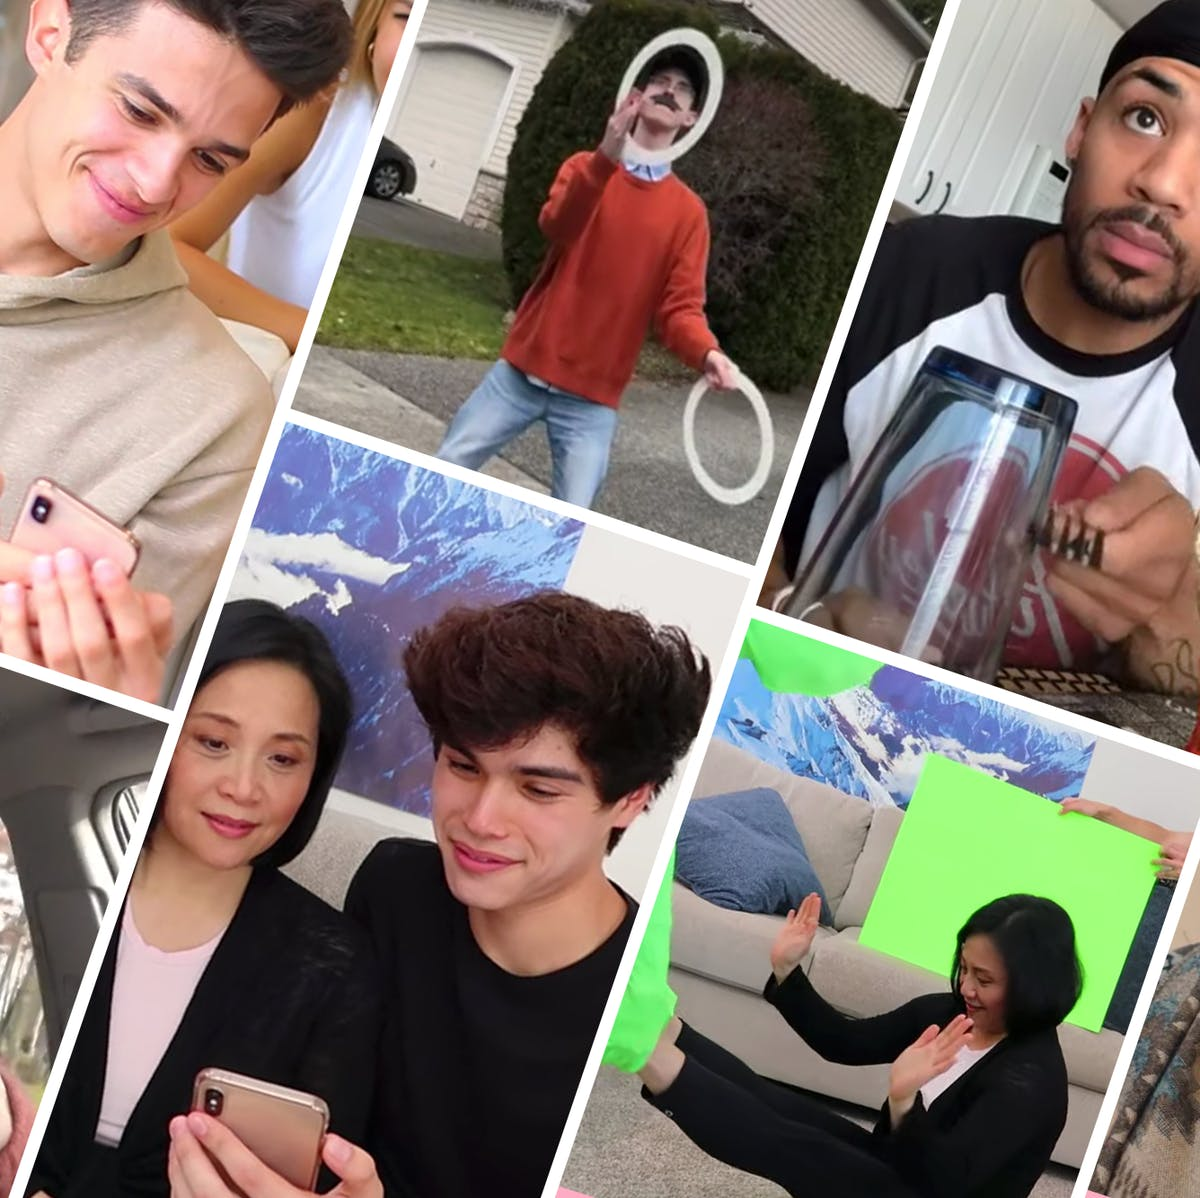 TikTok: Most Adults Have Never Heard of It, and That's by Design